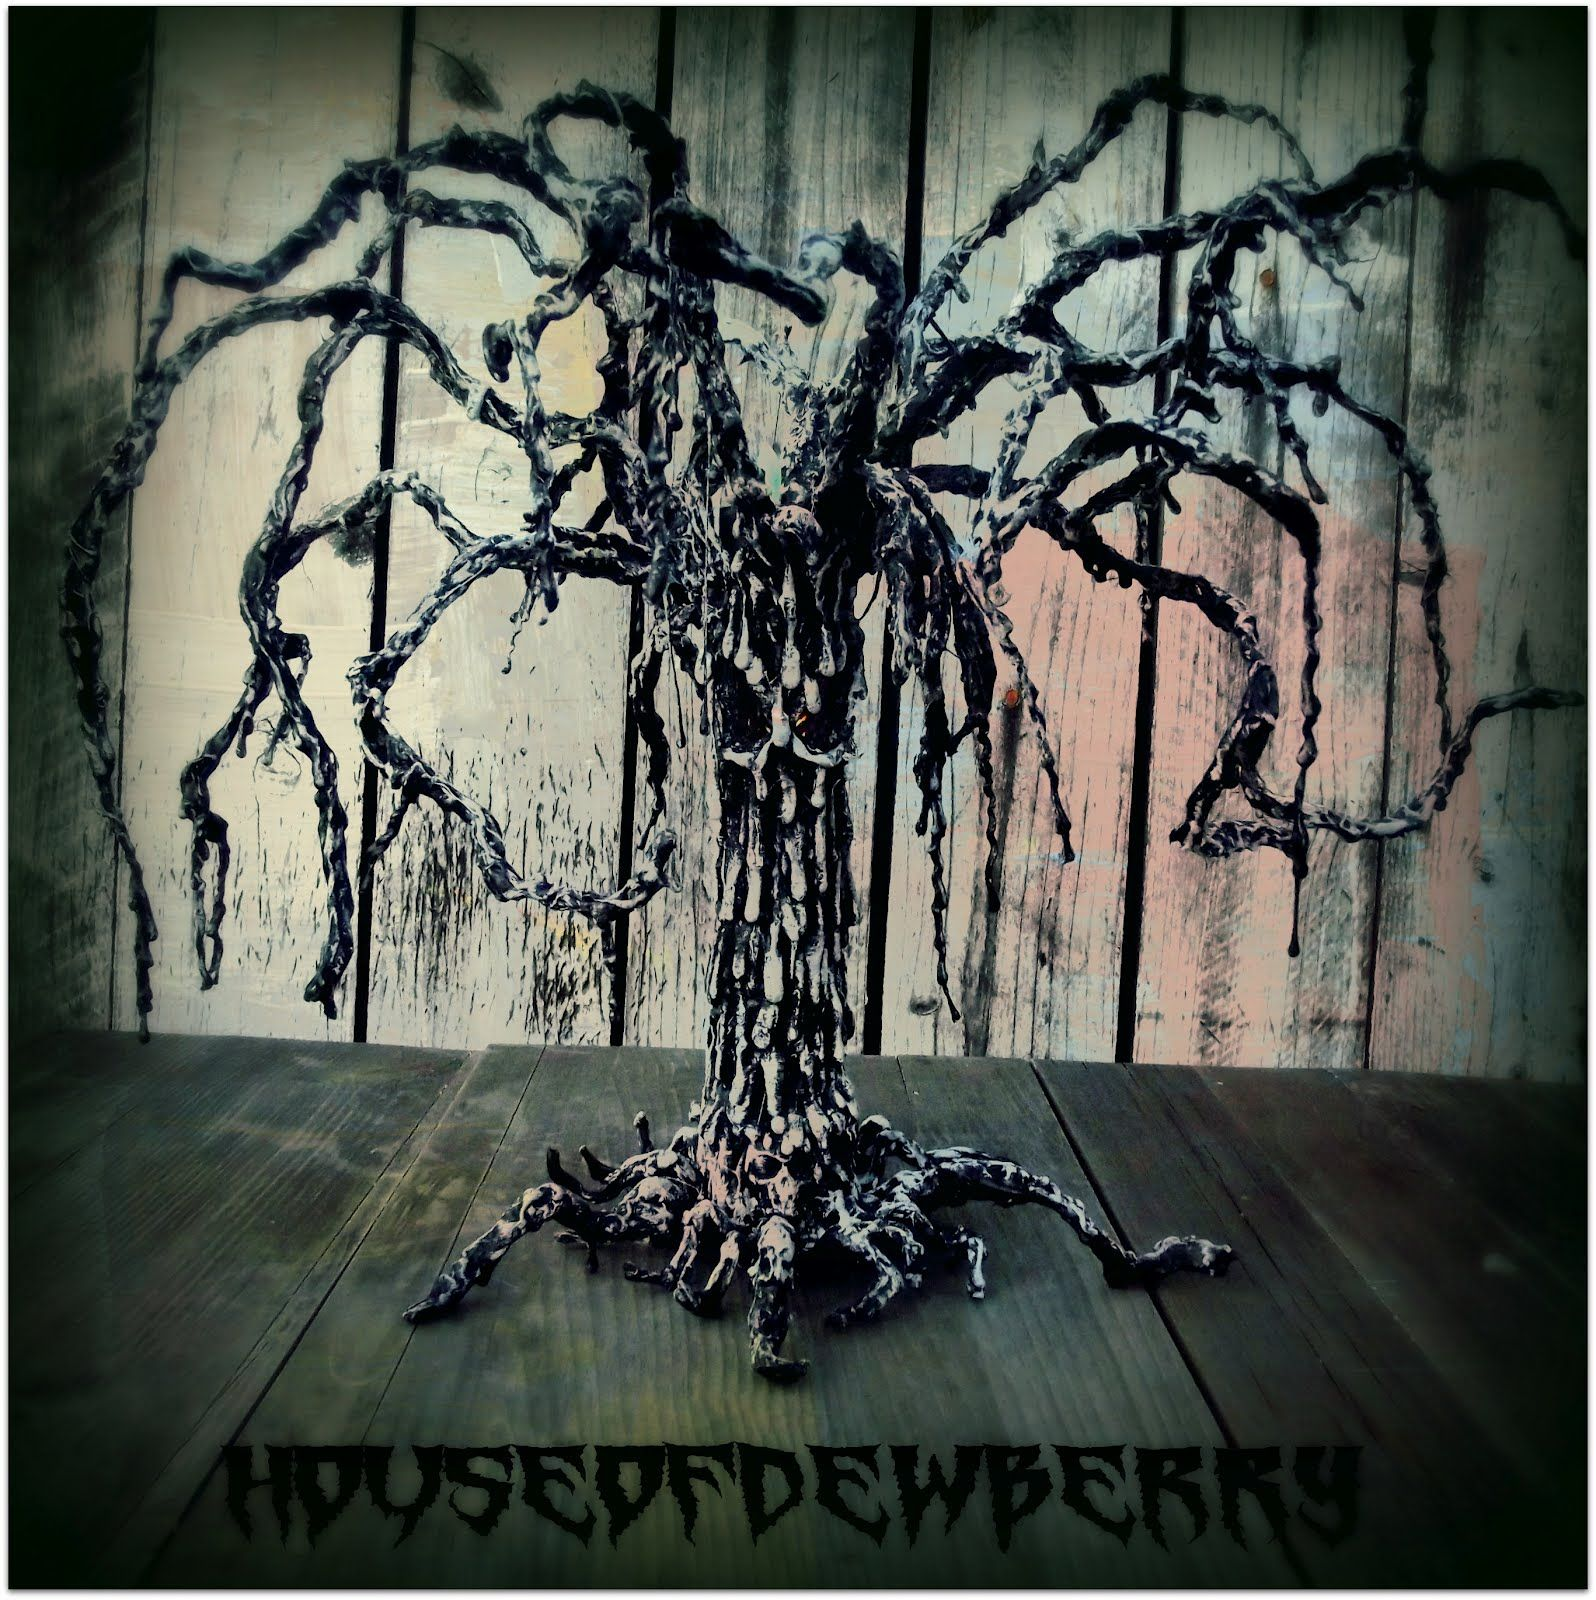 Spooky halloween tree decoration - Halloween Diy Decor House Of Dewberry Creepy Evil Tree Made From Paper Towel Roll